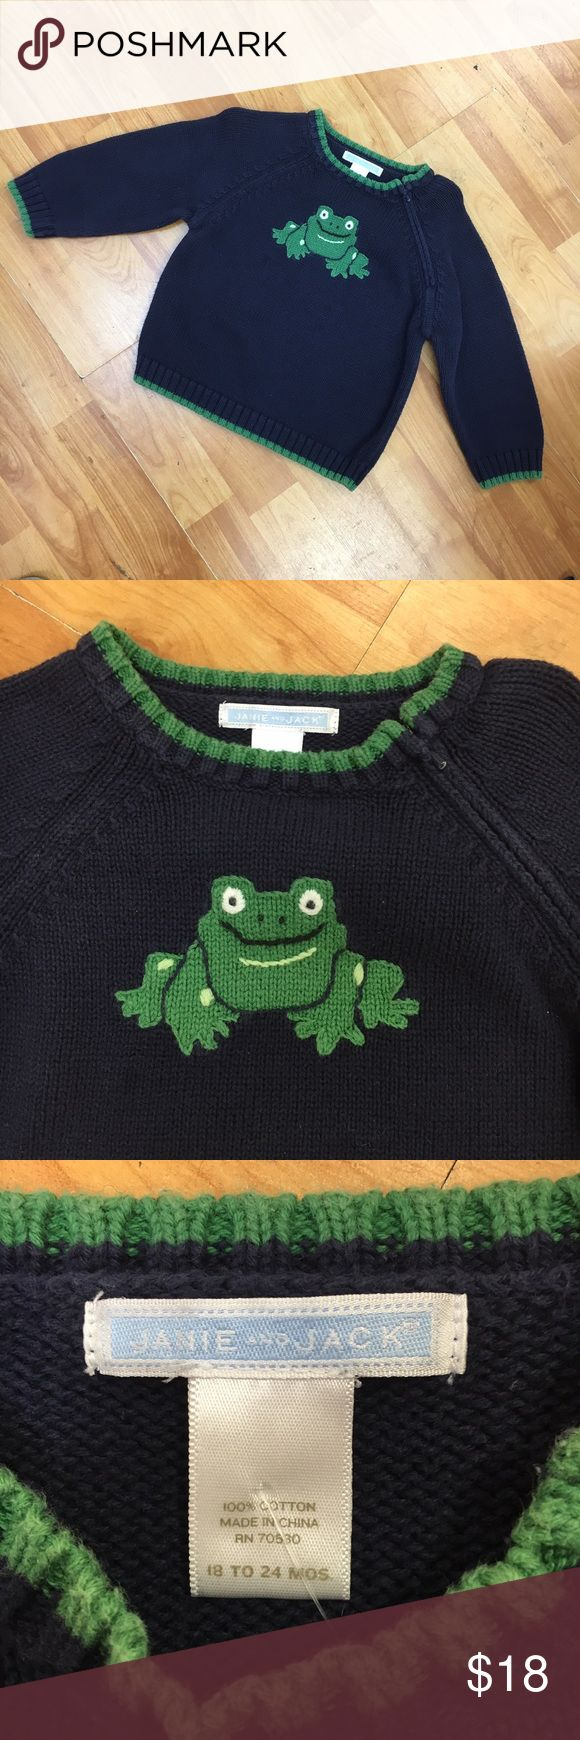 Janie and jack navy green frog sweater 12-18 mo Fair amount of wash wear and fade.  Sweater zips on shoulder on left.  Very preppy and cute.  #frog #navy #green #blueandgreen #blue #animals #sweater Janie and Jack Shirts & Tops Sweaters